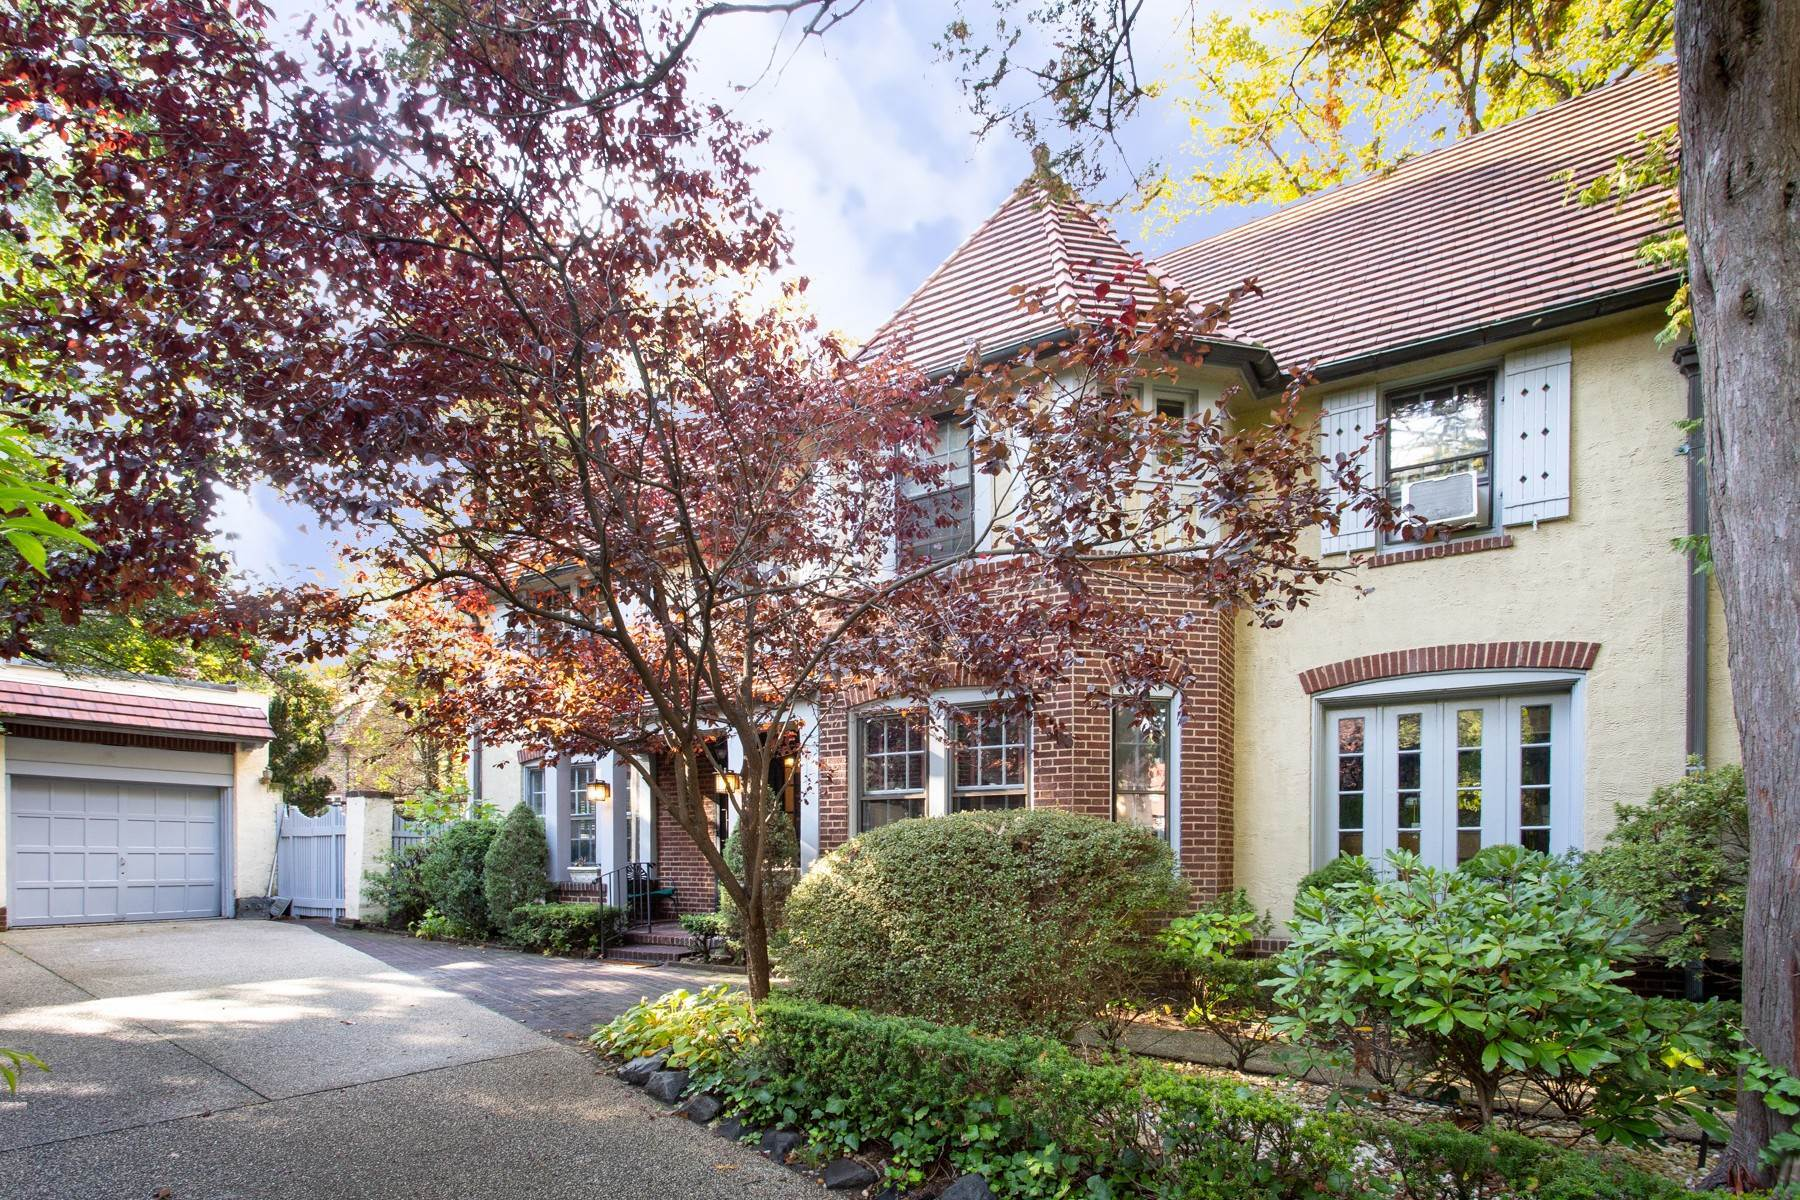 Single Family Homes for Sale at 'FOREST HILLS GARDENS ATTERBURY HOME DESIGNED FOR LIVING, SPACIOUS INSIDE & OUT' 63 Greenway North, Forest Hills Gardens, Forest Hills, New York 11375 United States